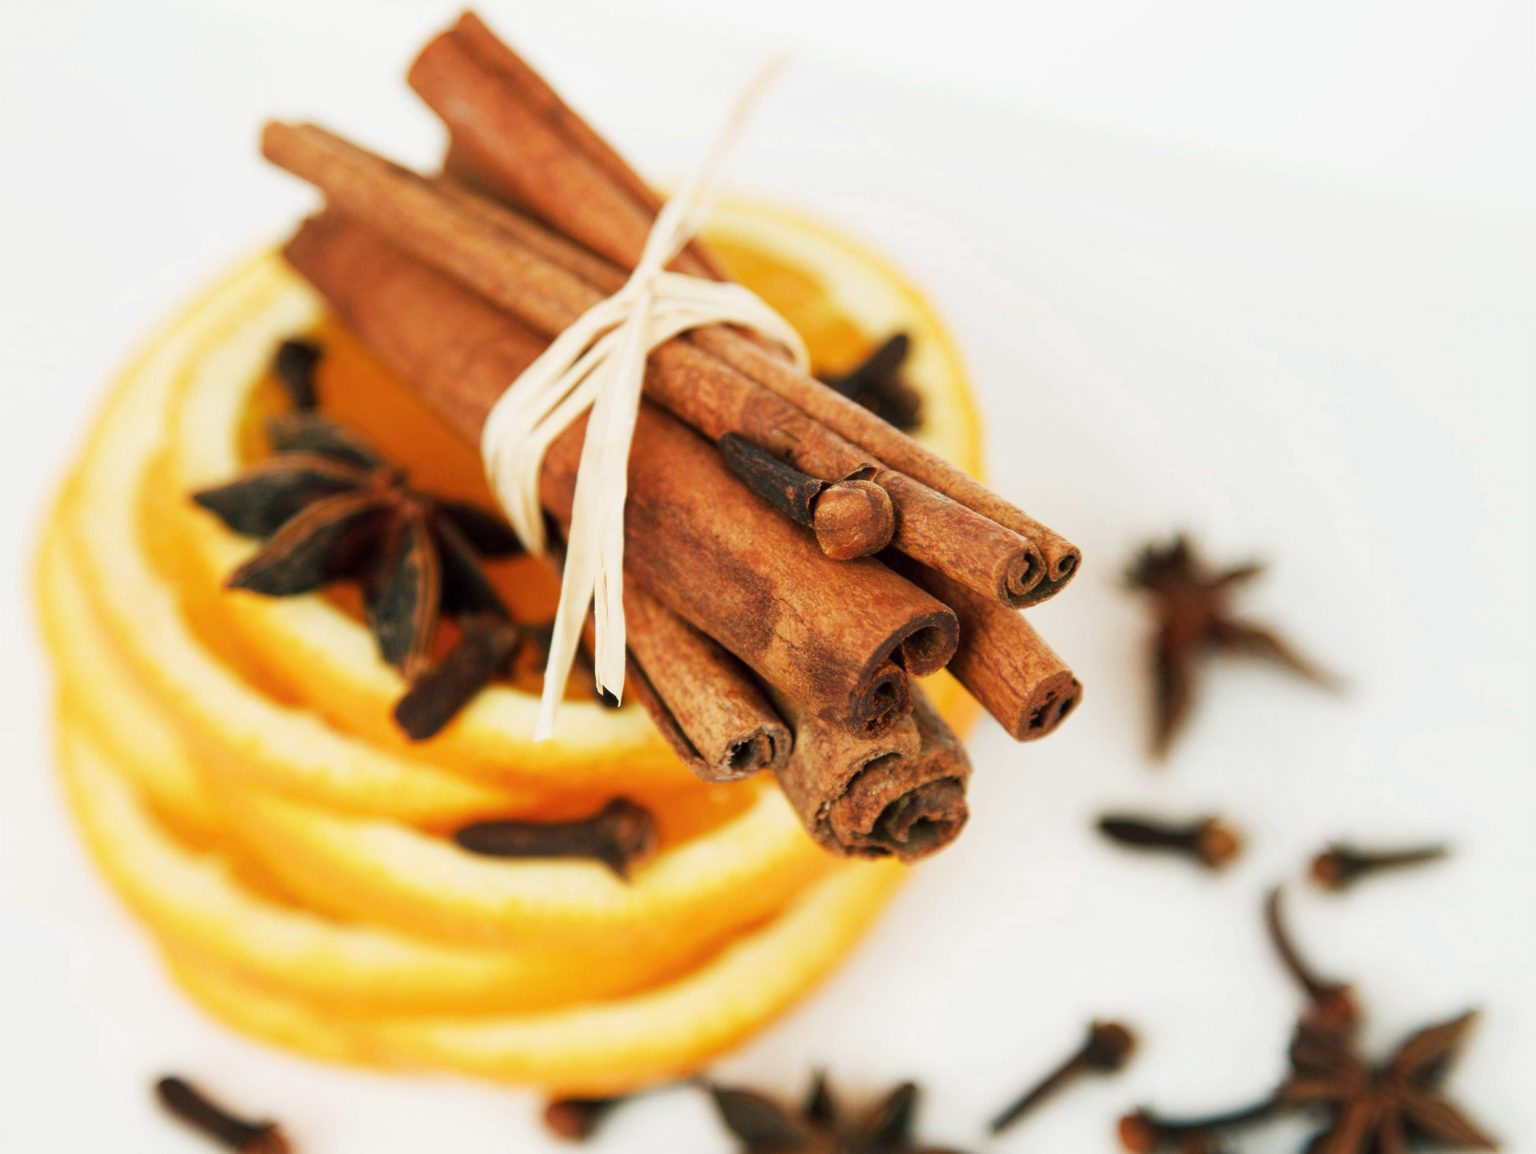 Cinnamon sticks on top of slices of orange with star anise and cloves